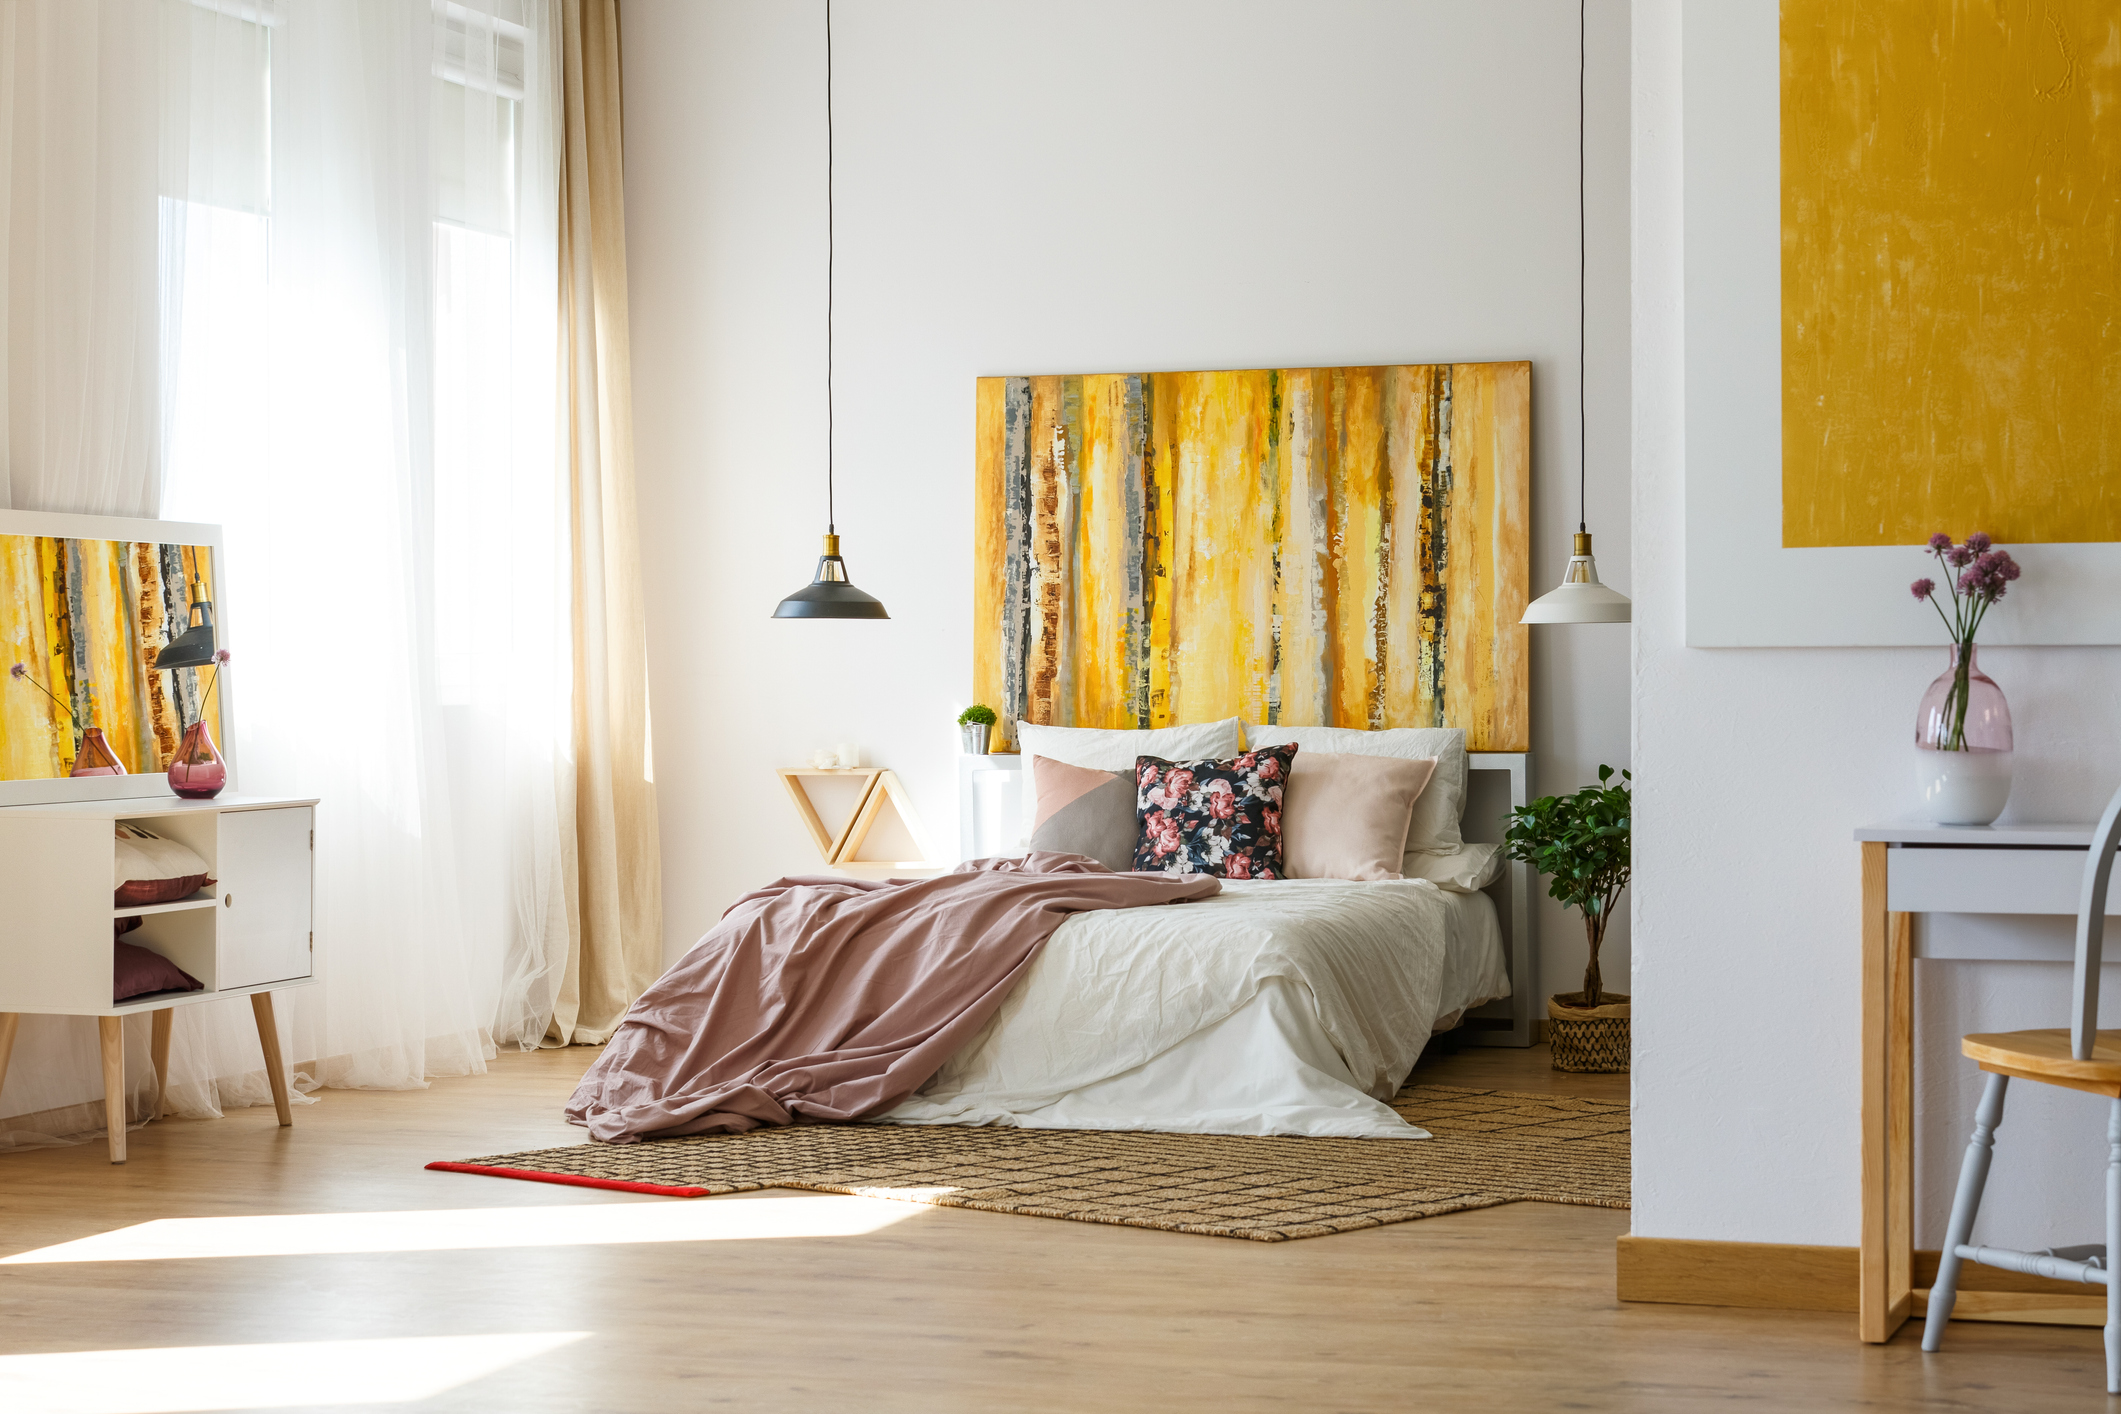 spacious bedroom with yellow accents